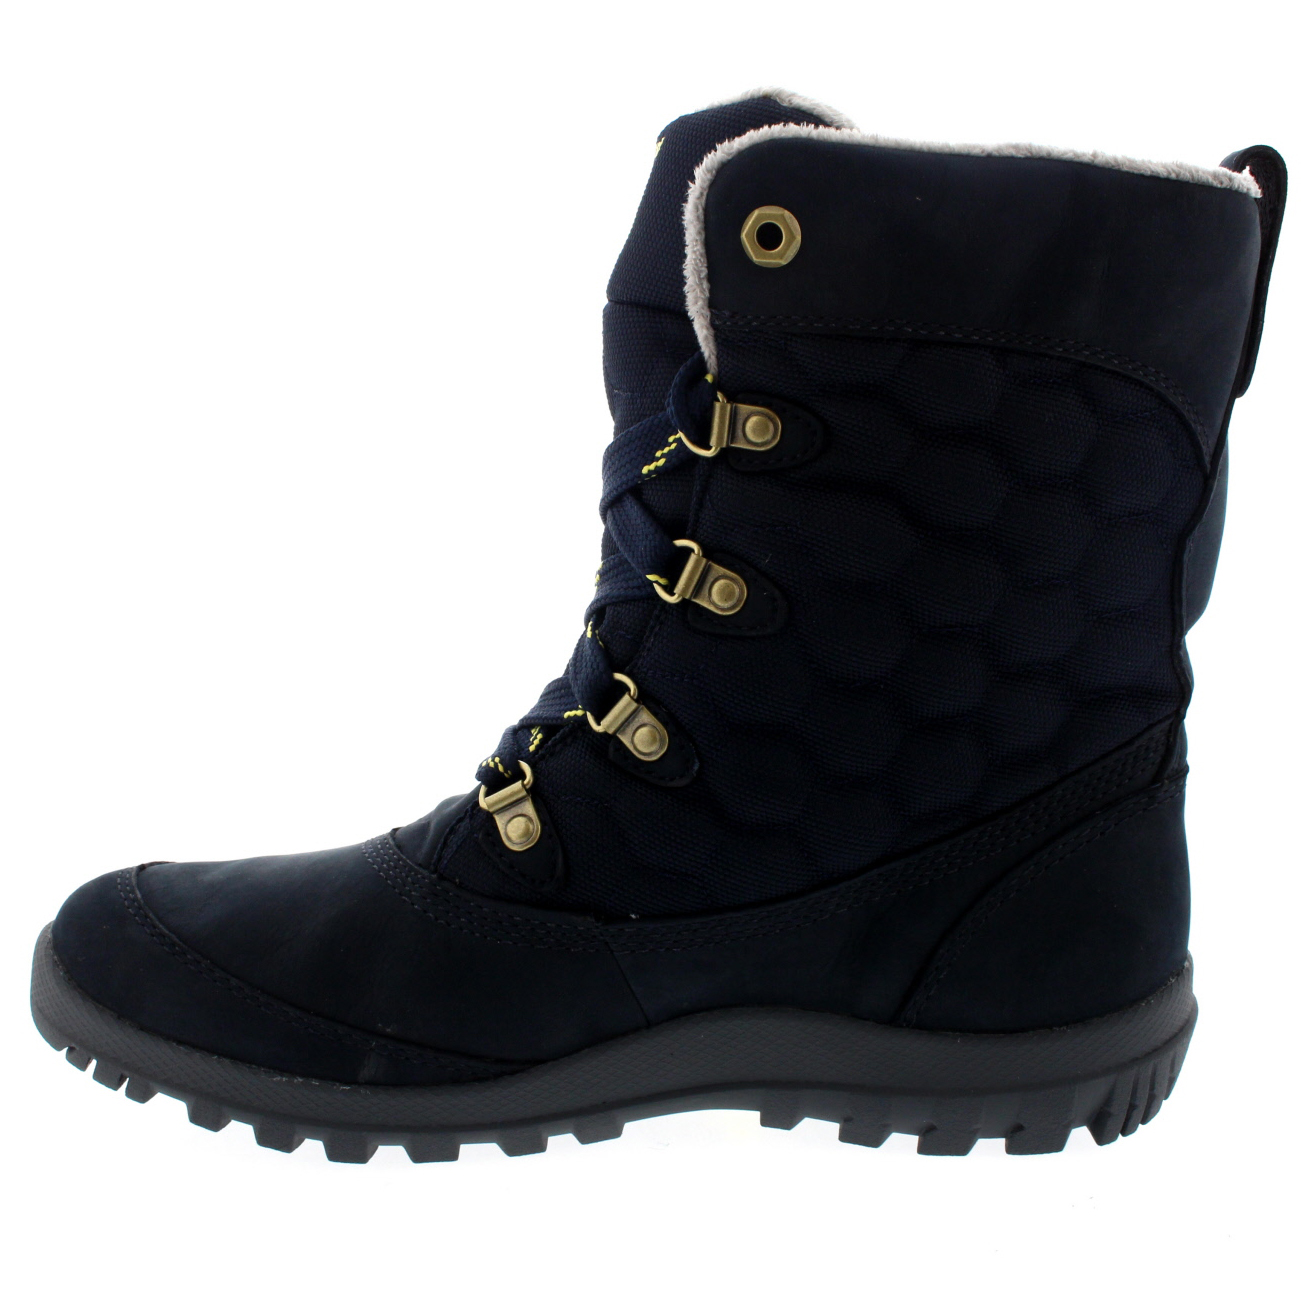 Timberland Women's Mount Hope Snow Boots Winter & Rain